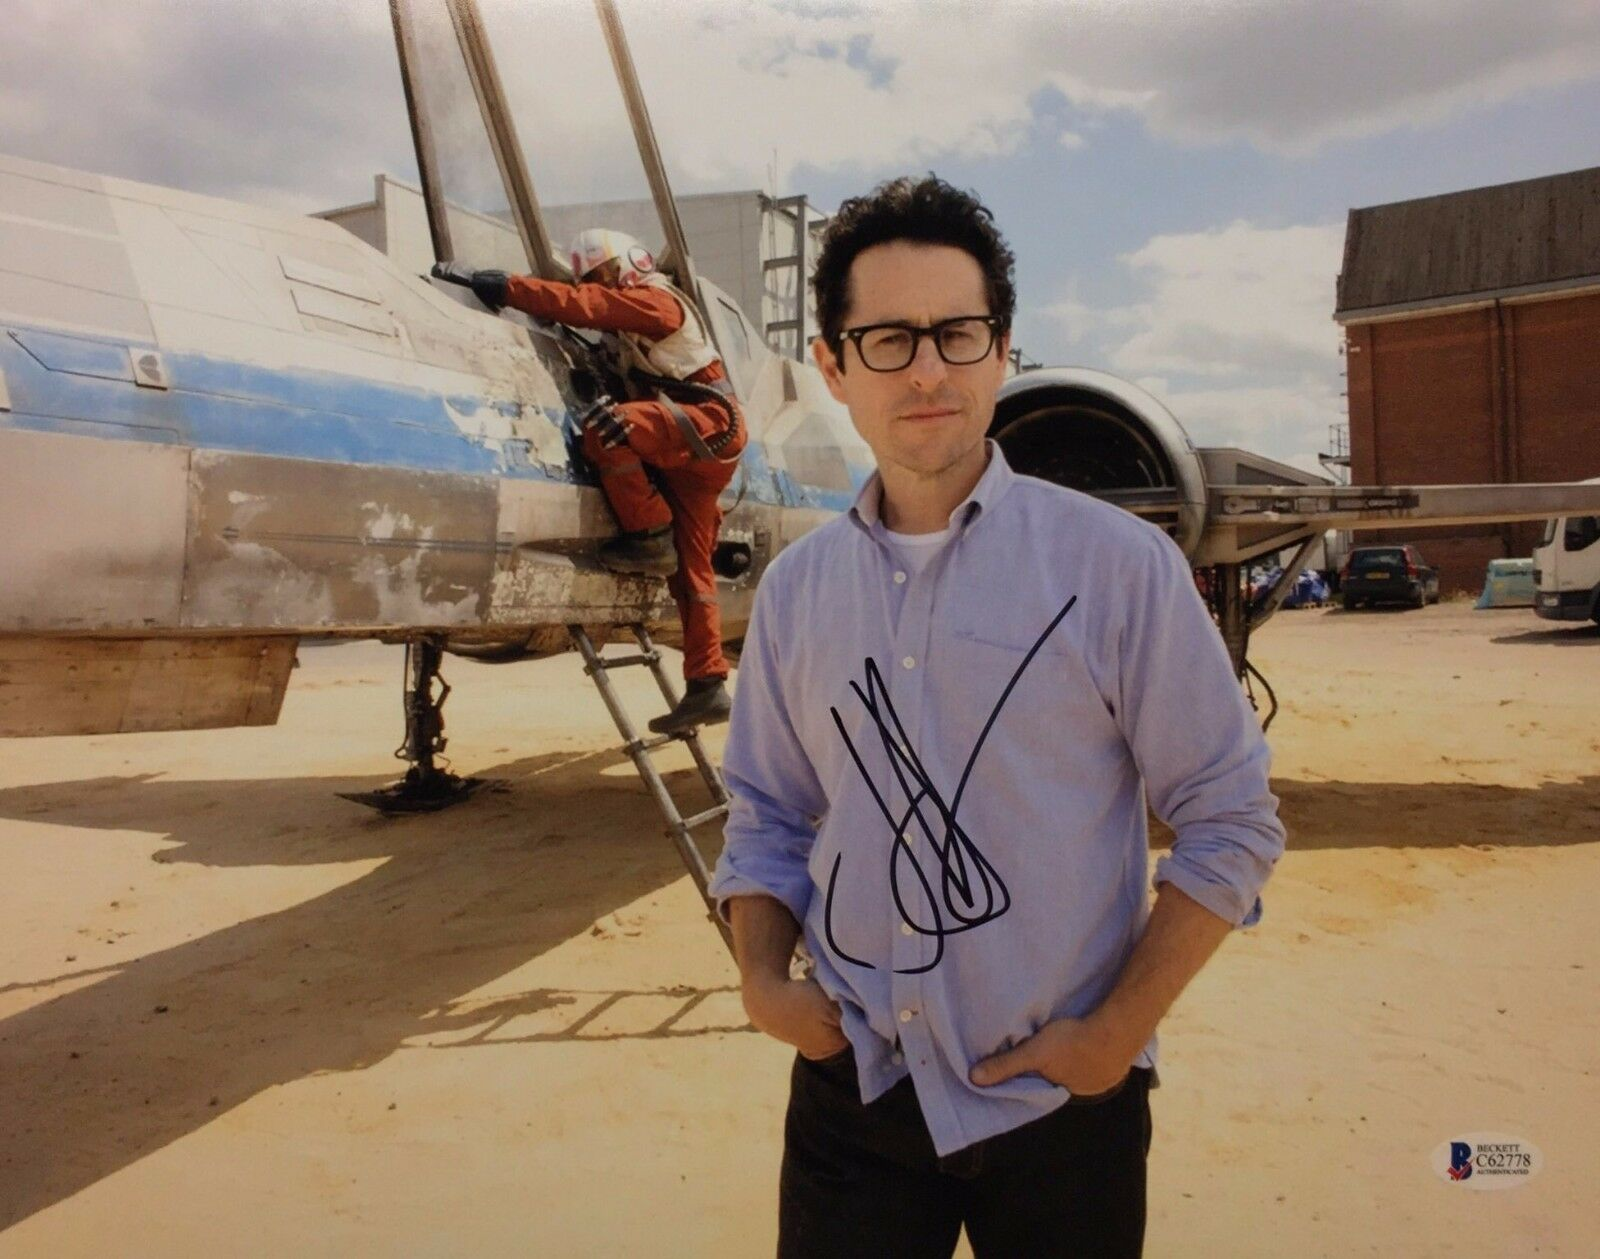 J.J. Abrams Signed 11x14 Star Wars Photo *The Force Awakens BAS Beckett C62778